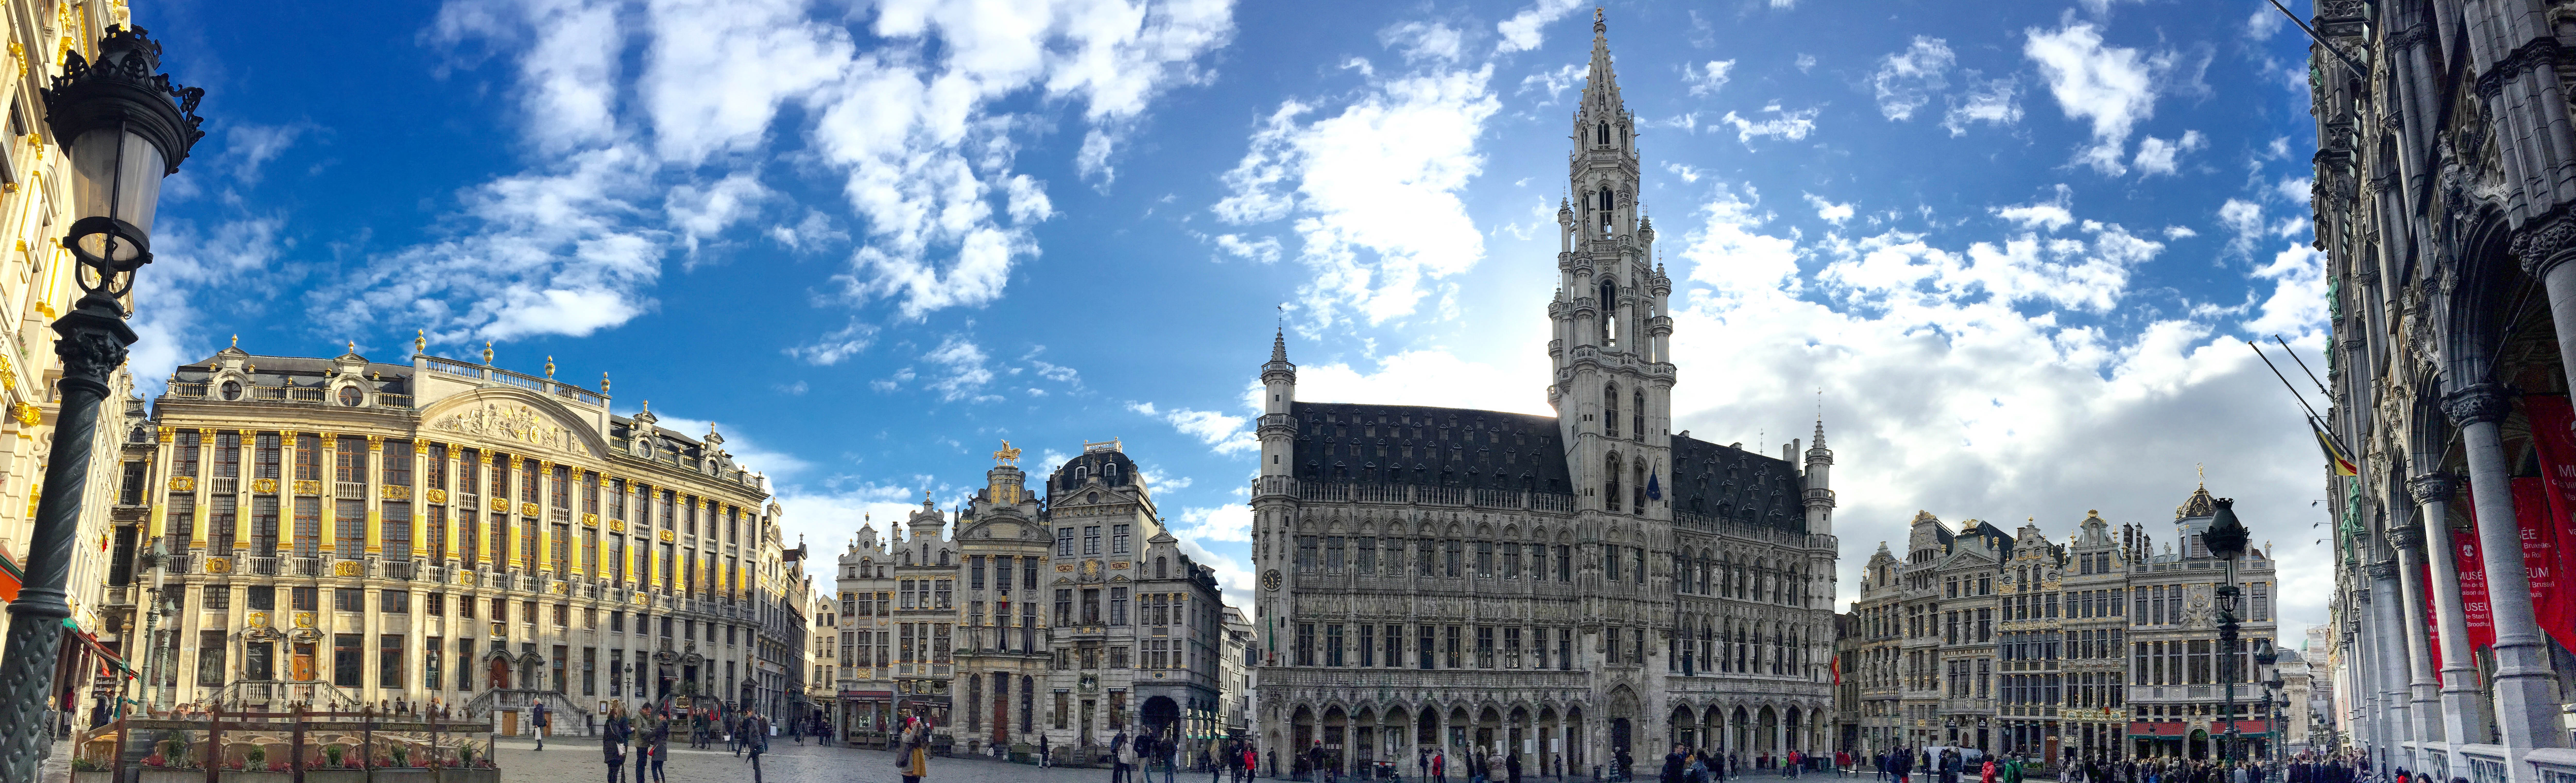 grand place - pano